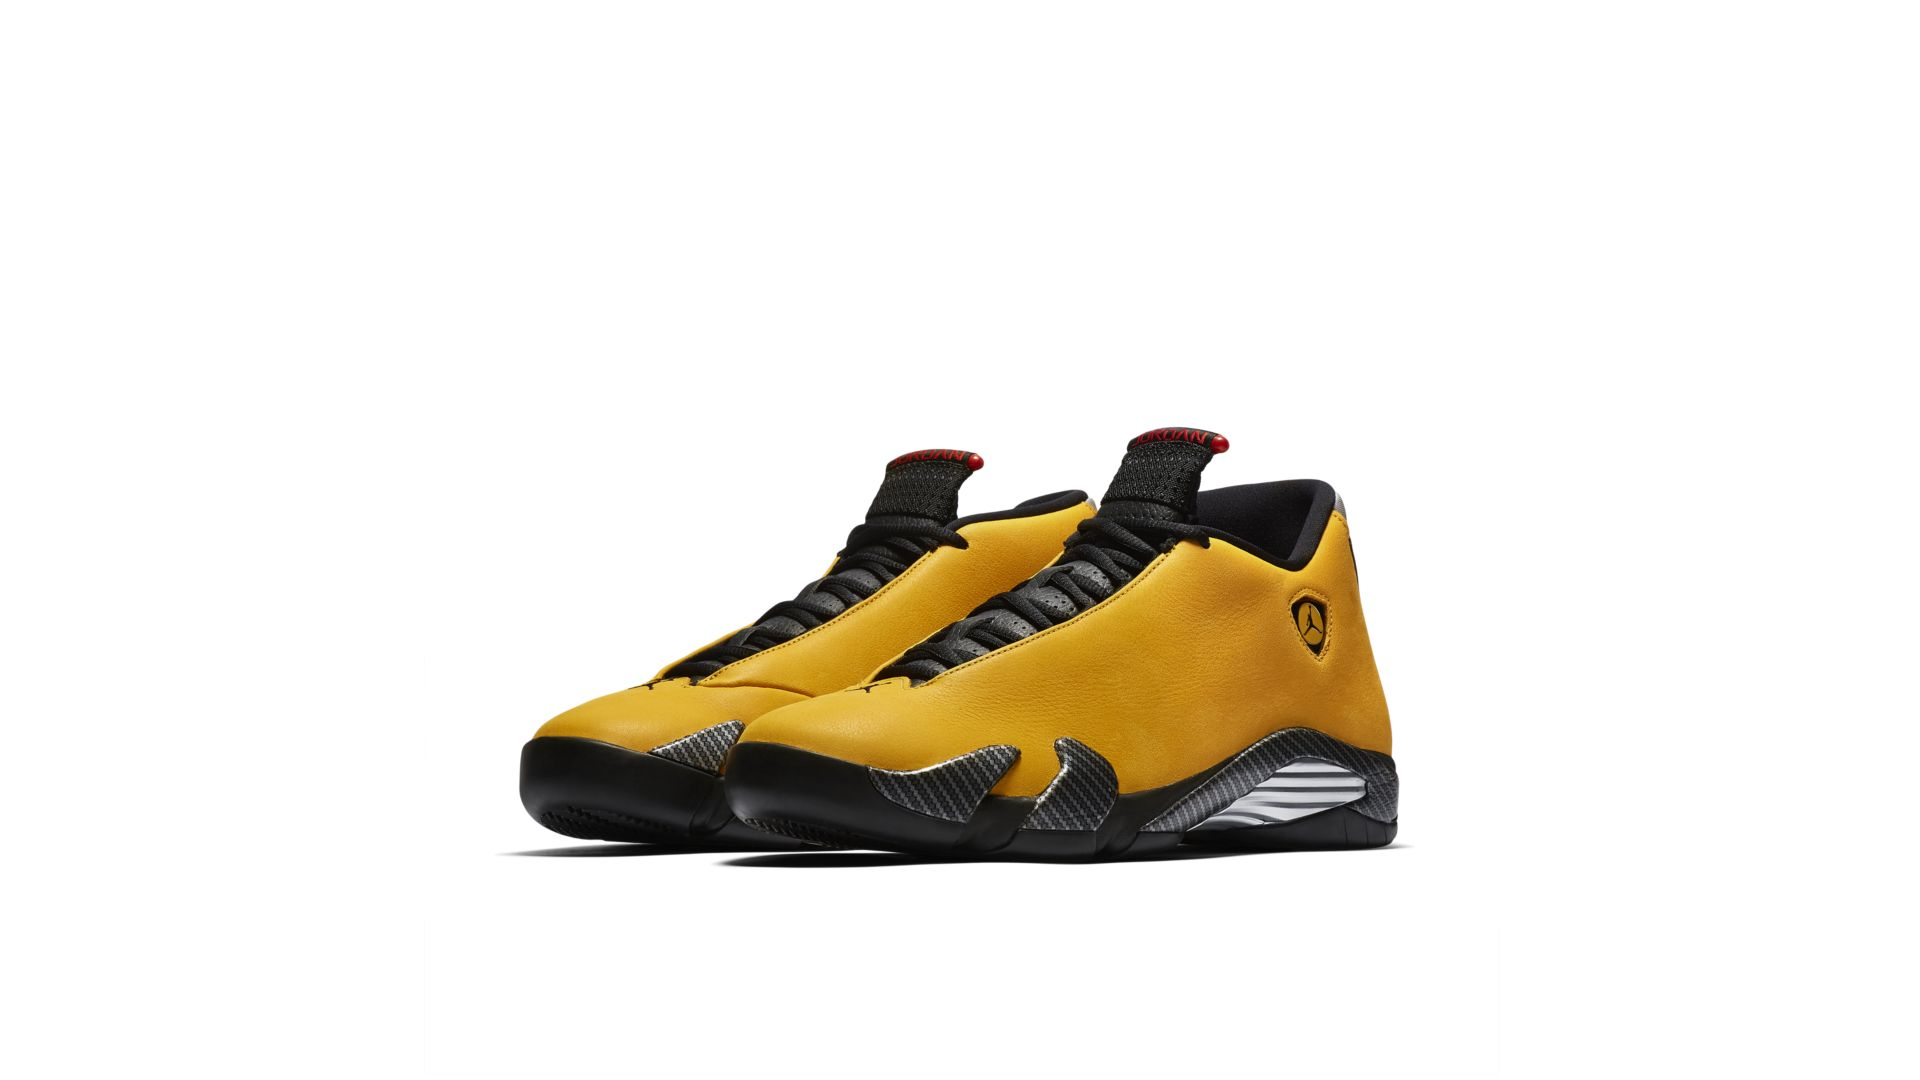 Jordan 14 Retro Ferrari University Gold (BQ3685-706)